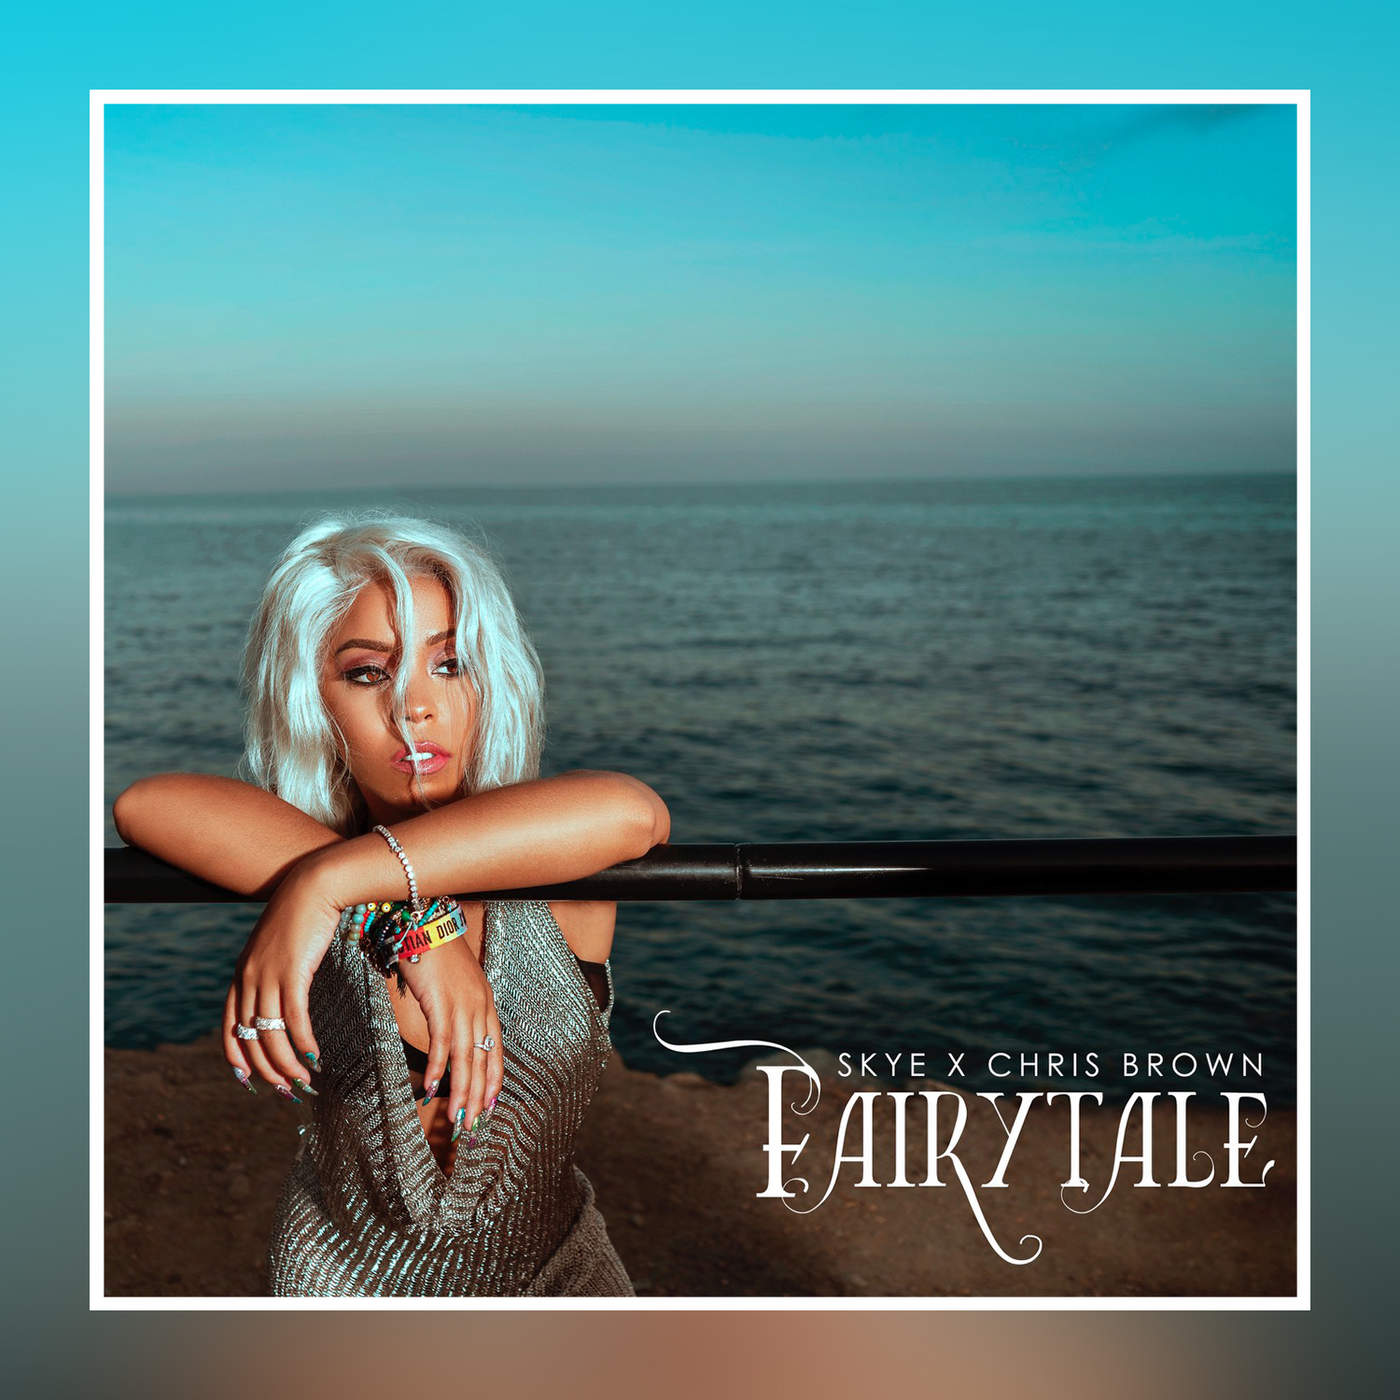 Download skye chris brown fairytale single itunes plus aac download skye chris brown fairytale single itunes plus aac m4a plus premieres malvernweather Image collections